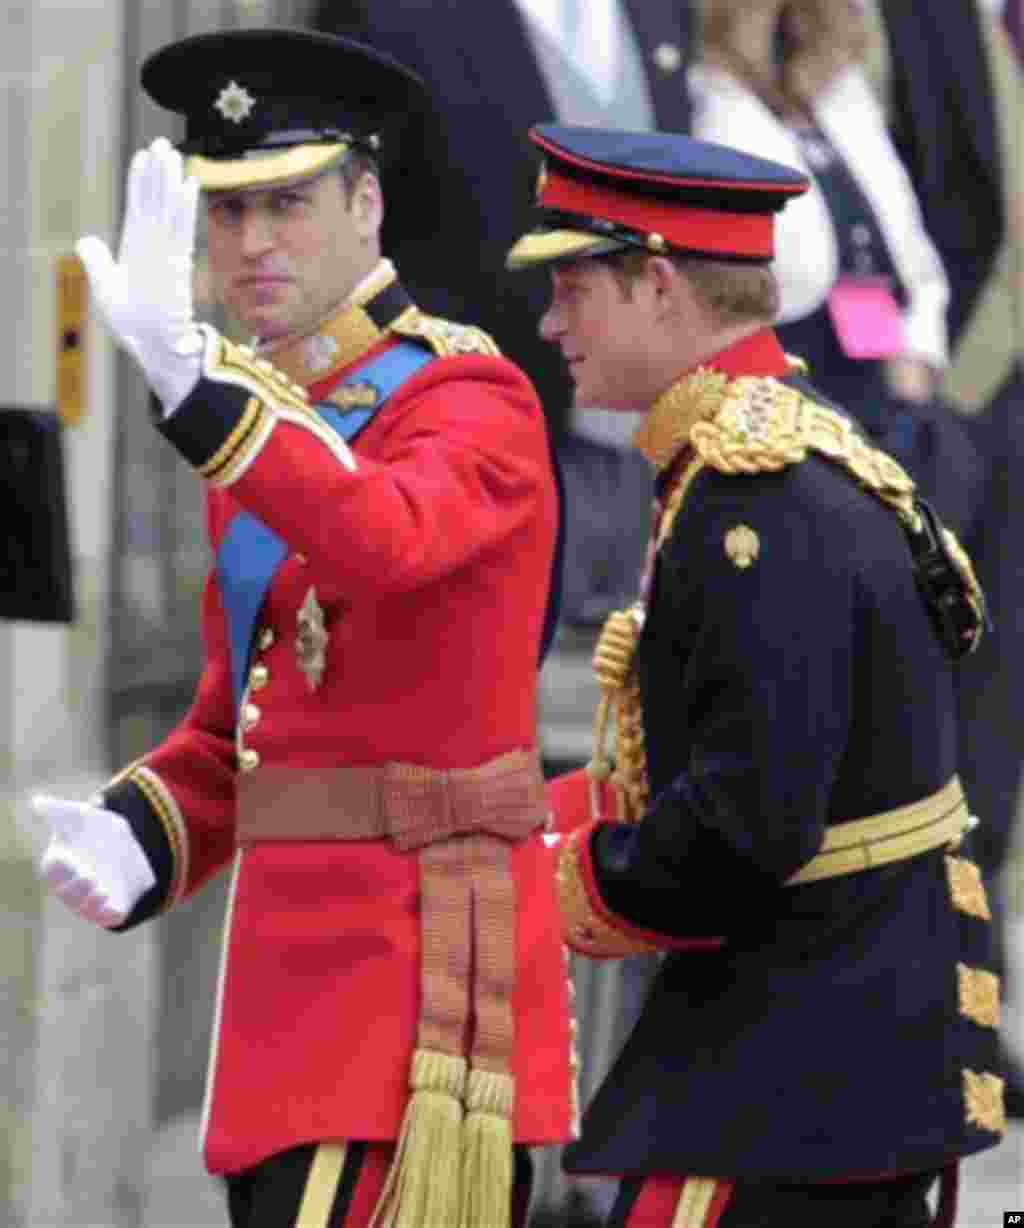 Britain's Prince William, left, and his best man Britain's Prince Harry arrive at Westminster Abbey at the Royal Wedding in London, April, 29, 2011 (AP Photo/Alastair Grant)